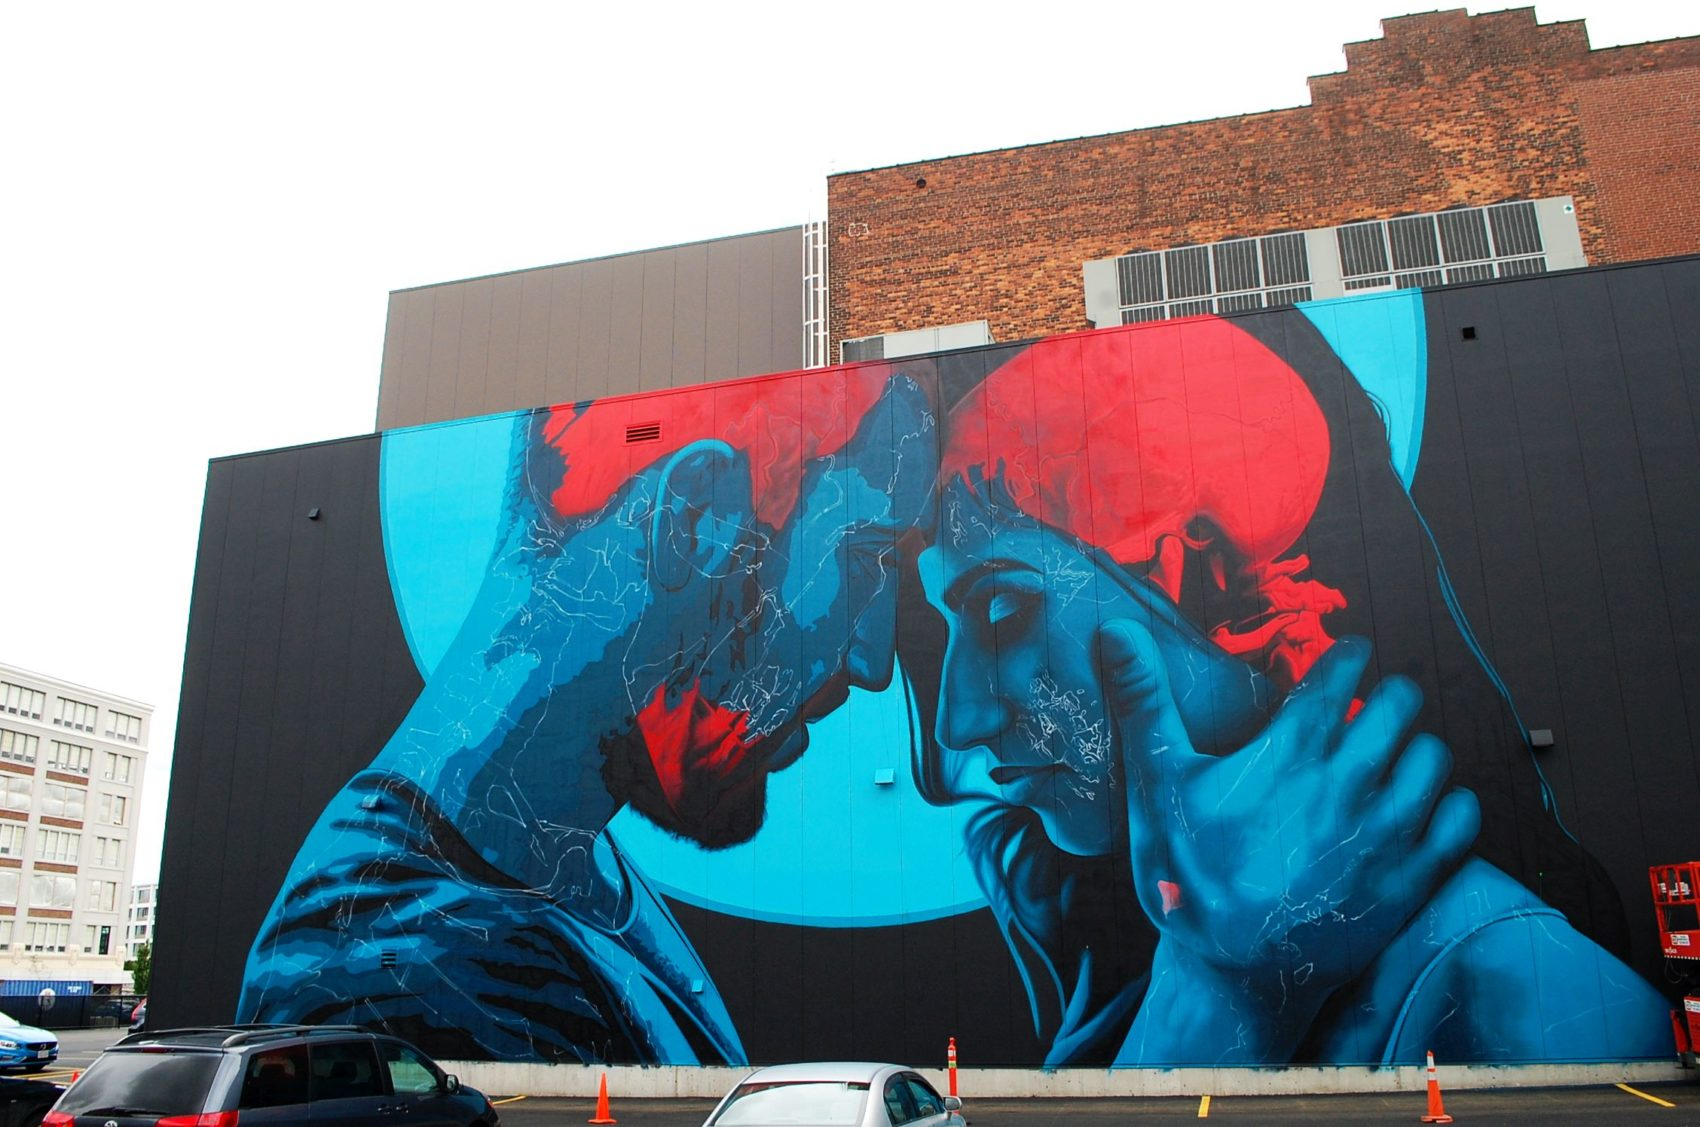 Our Favorite Street Art From Pow Wow Worcester The Artery